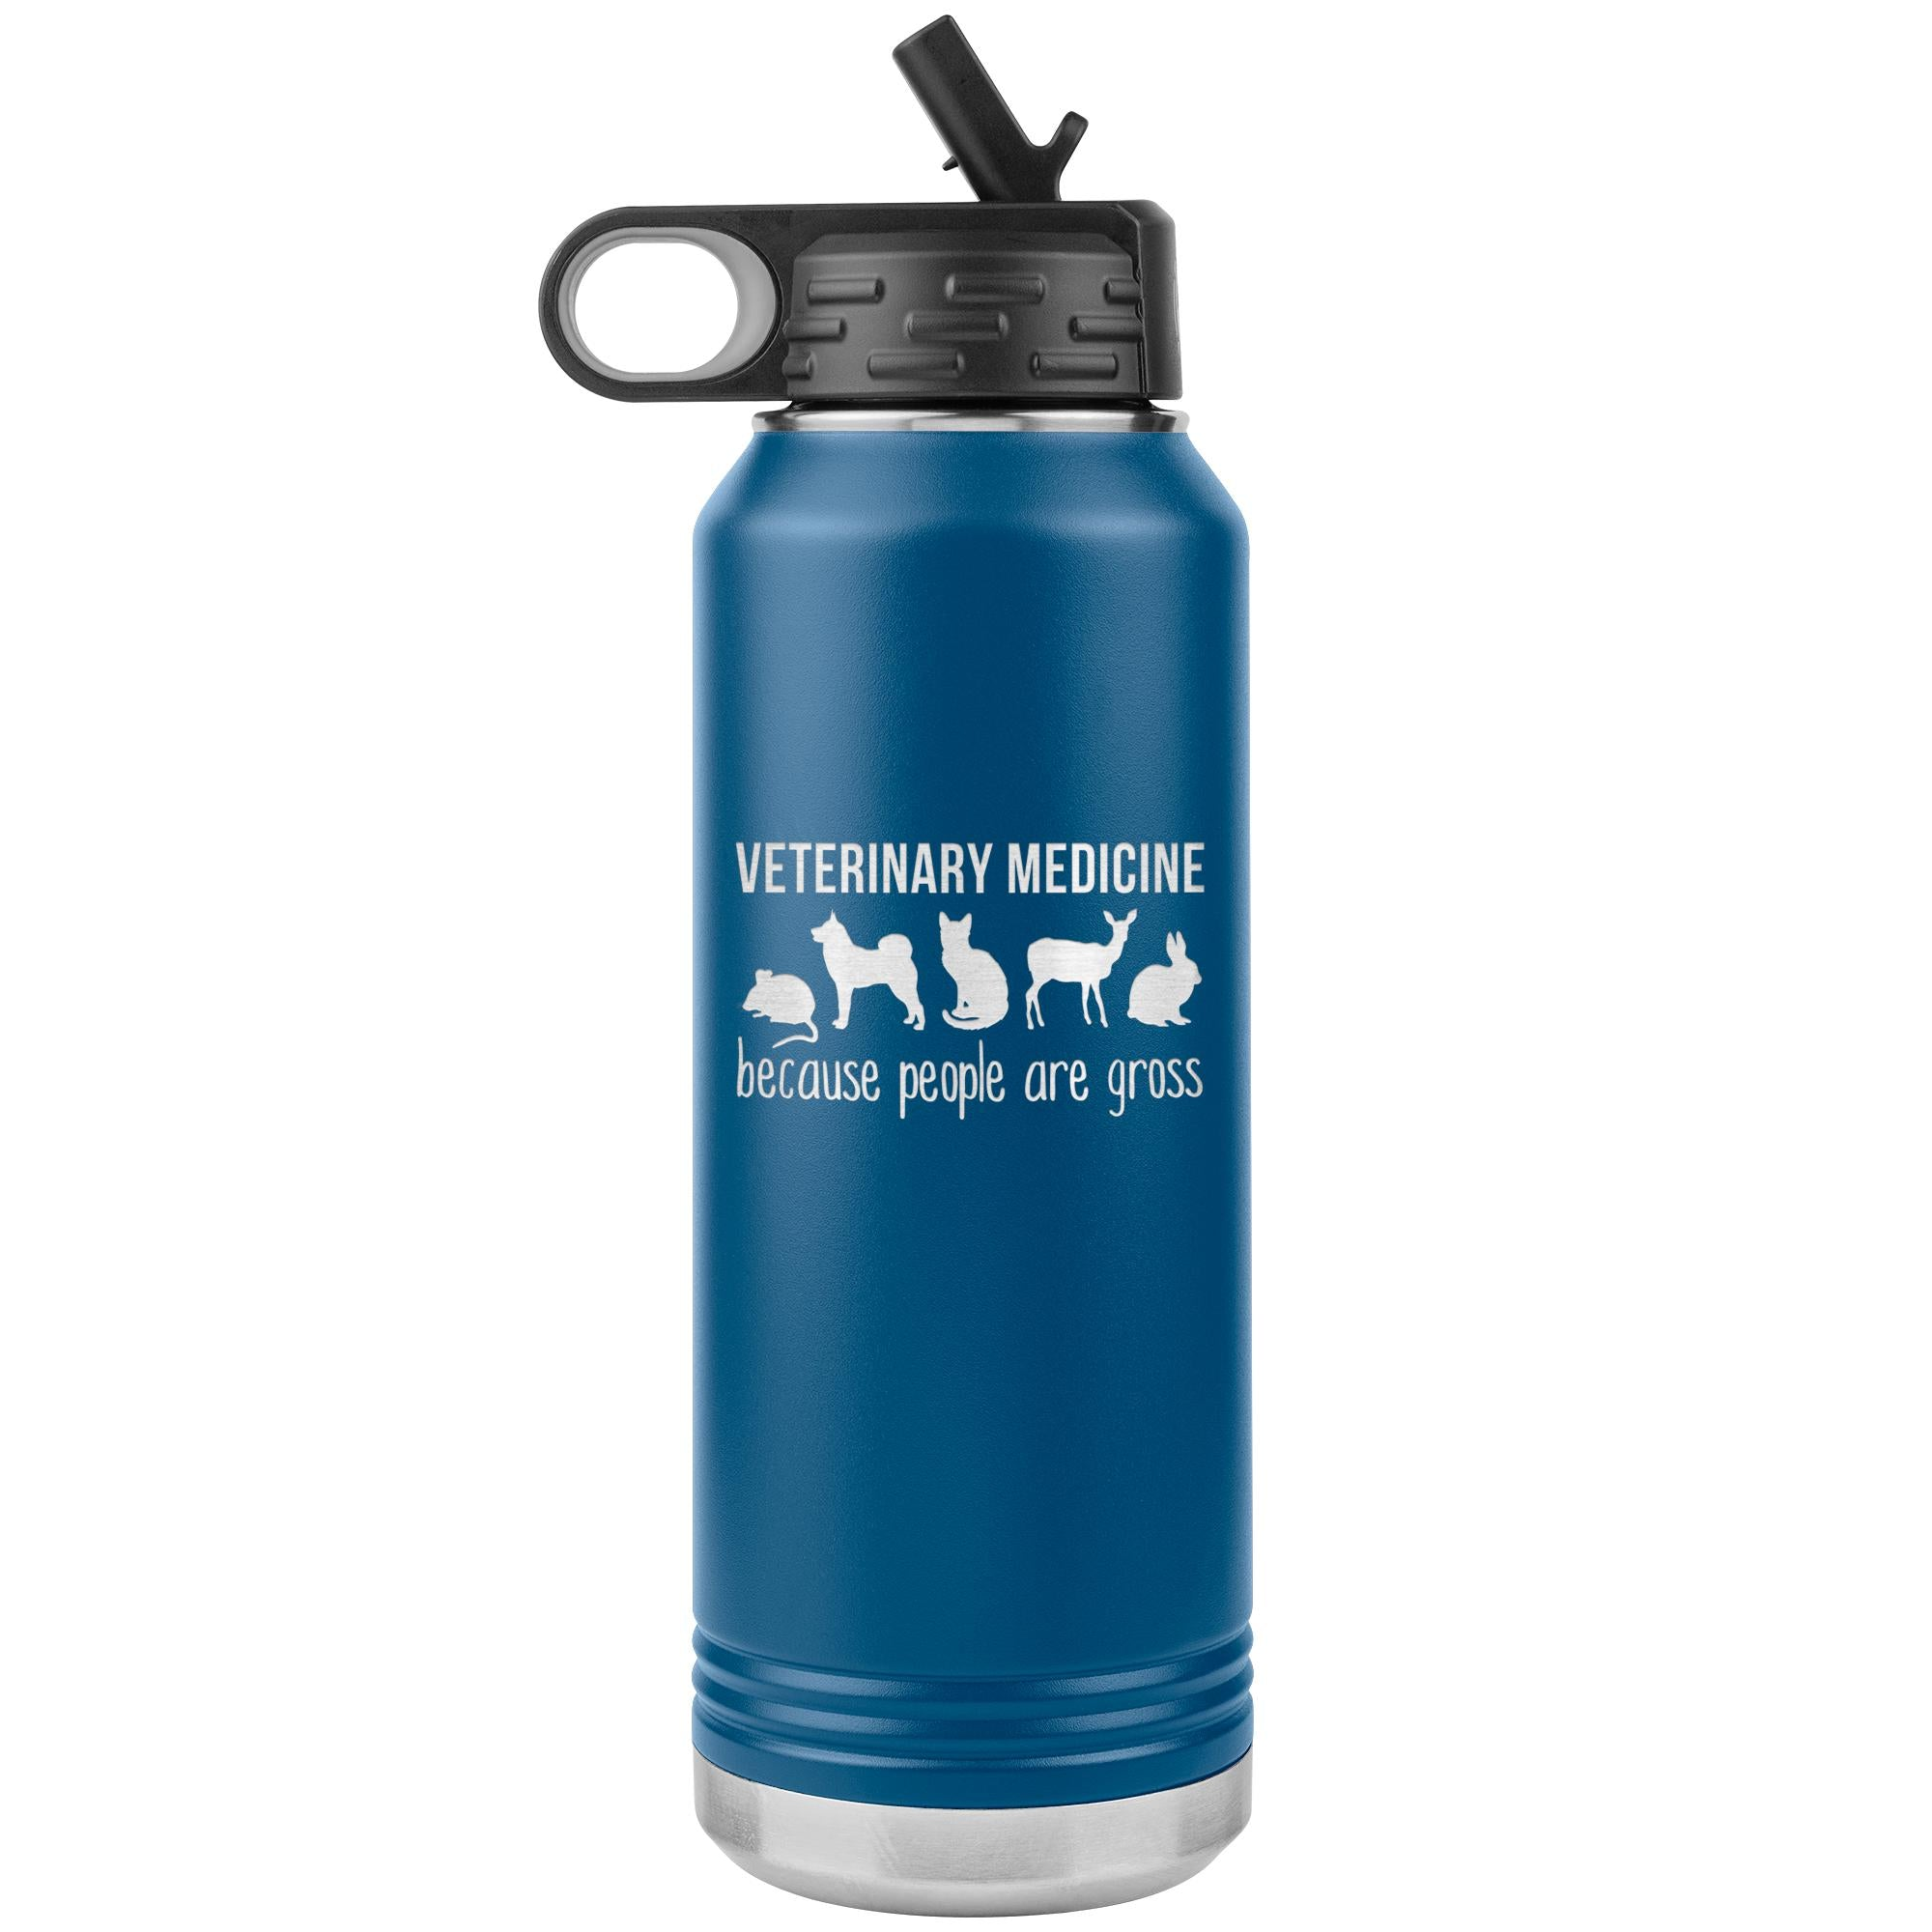 Veterinary medicine, because people are gross Water Bottle Tumbler 32 oz-Tumblers-I love Veterinary